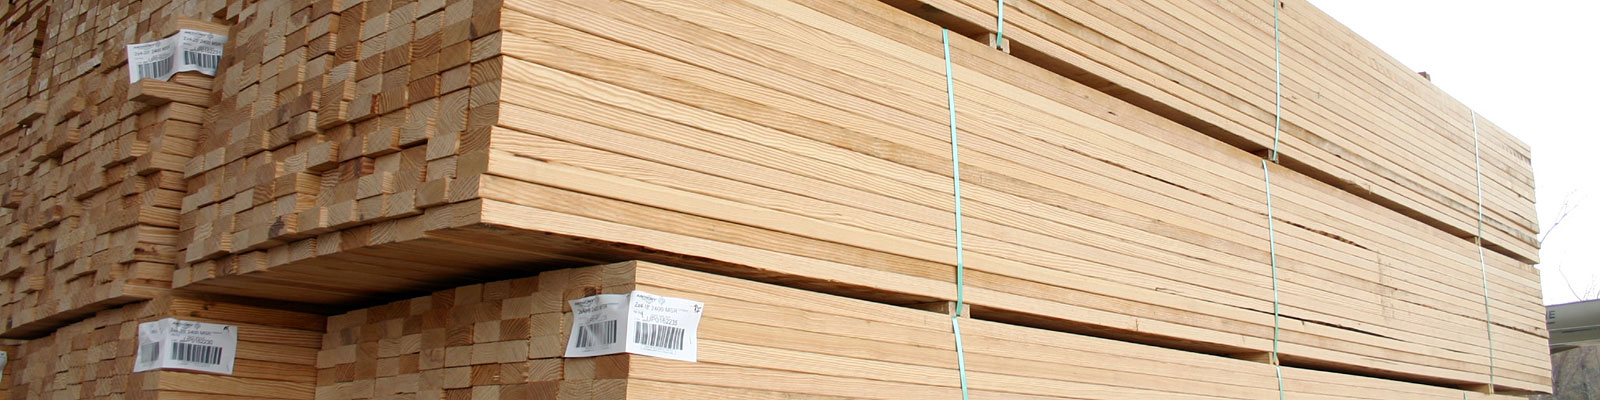 POWERFUL SOLUTIONS Lumber Span Calculator | Anthony Forest Products Co